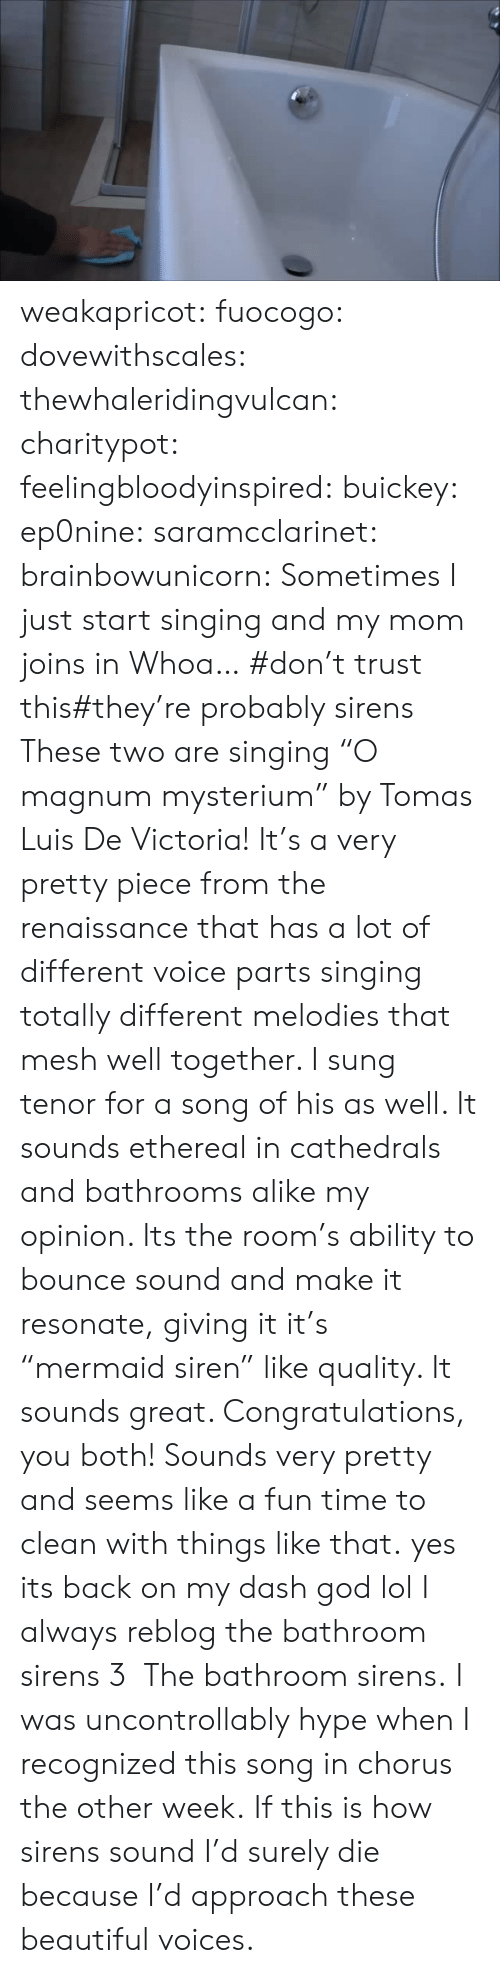 """Chorus: weakapricot:  fuocogo:  dovewithscales:  thewhaleridingvulcan:  charitypot:  feelingbloodyinspired:  buickey:  ep0nine:  saramcclarinet:  brainbowunicorn:  Sometimes I just start singing and my mom joins in  Whoa…  #don't trust this#they're probably sirens  These two are singing """"O magnum mysterium"""" by Tomas Luis De Victoria! It's a very pretty piece from the renaissance that has a lot of different voice parts singing totally different melodies that mesh well together. I sung tenor for a song of his as well. It sounds ethereal in cathedrals and bathrooms alike my opinion. Its the room's ability to bounce  sound and make it resonate, giving it it's """"mermaid siren"""" like quality. It sounds great. Congratulations, you both! Sounds very pretty and seems like a fun time to clean with things like that.  yes its back on my dash  god lol  I always reblog the bathroom sirens 3  The bathroom sirens.   I was uncontrollably hype when I recognized this song in chorus the other week.   If this is how sirens sound I'd surely die because I'd approach these beautiful voices."""